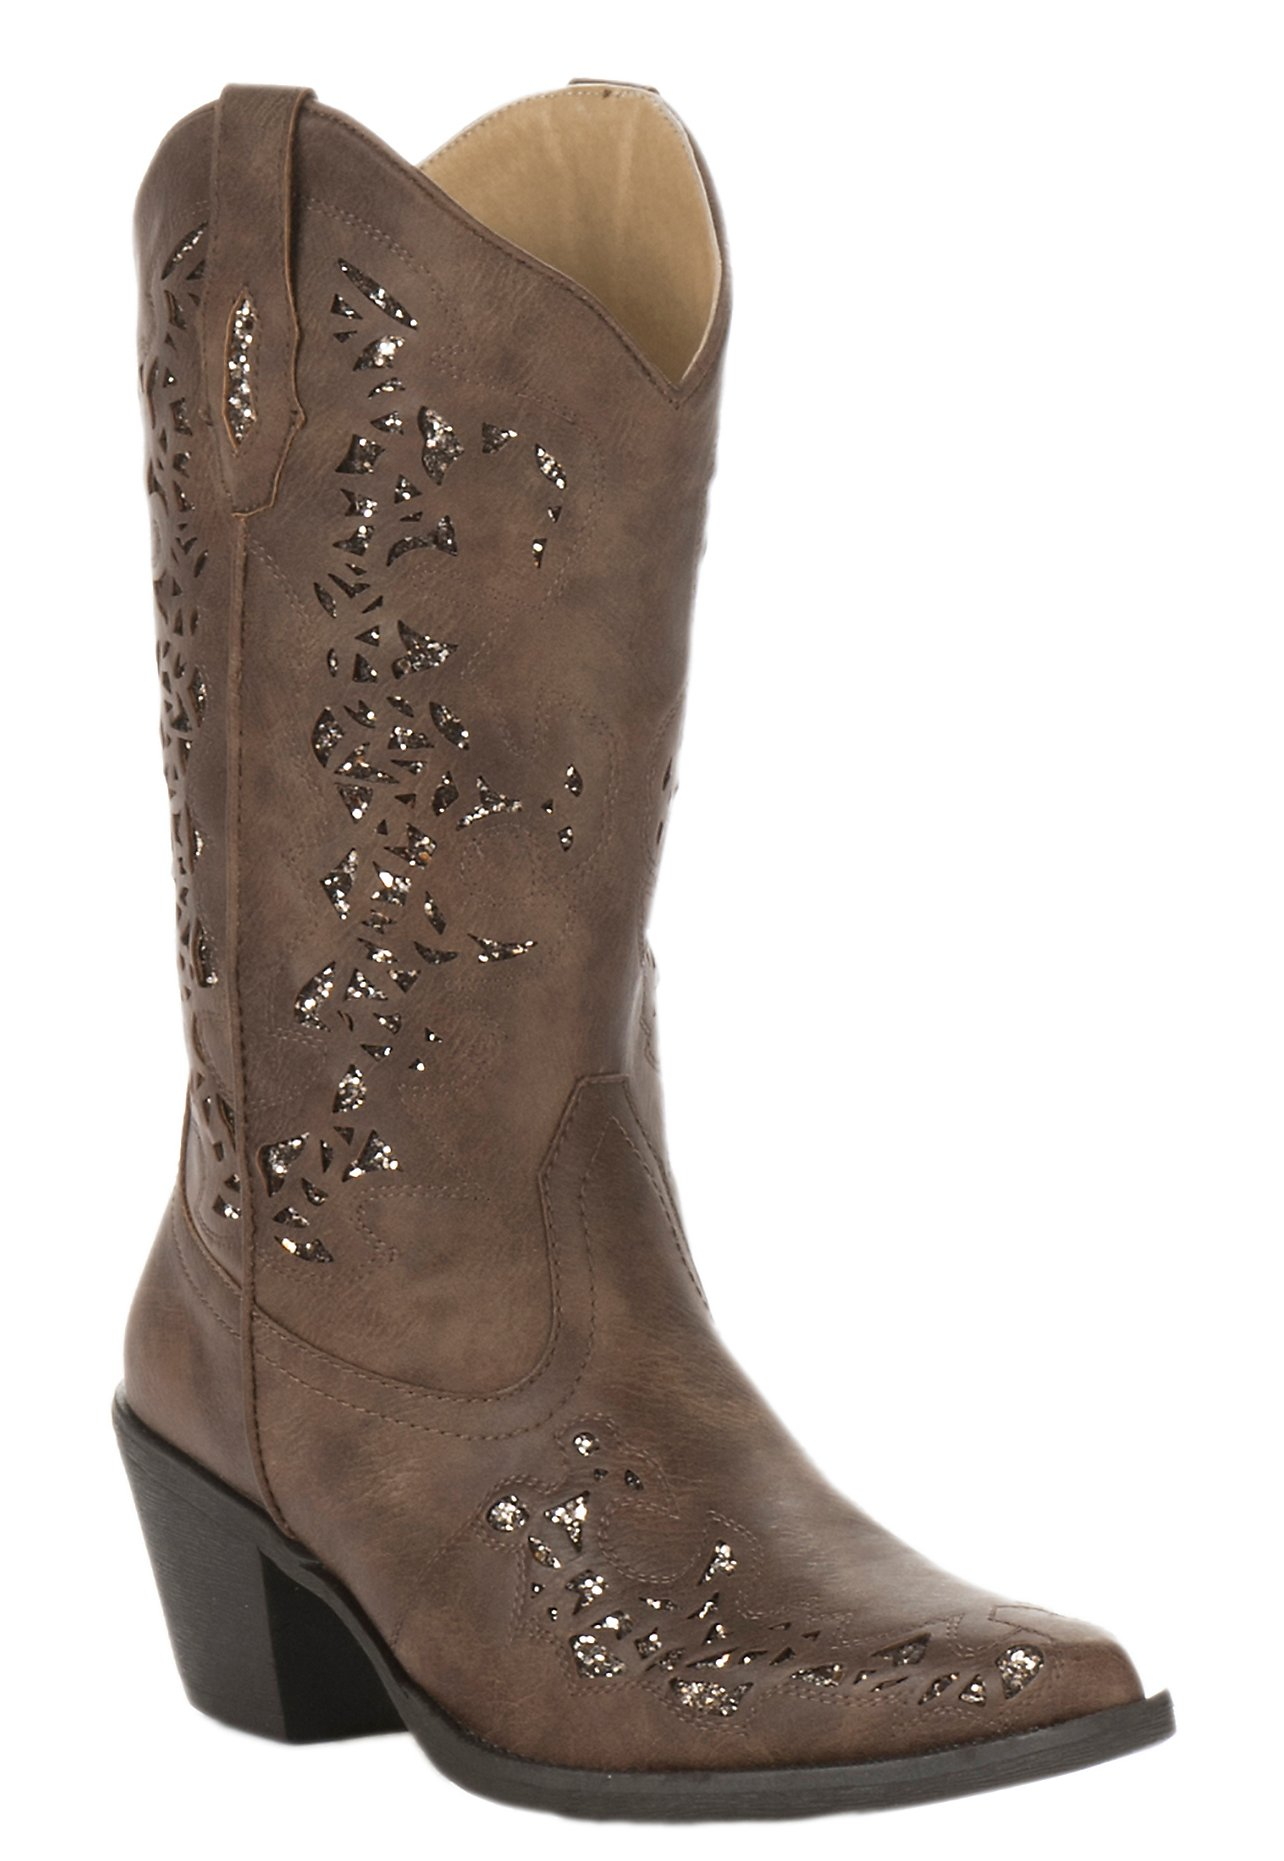 Roper Womens Tan Faux Leather with Gold Metallic Inlay Snip Toe Fashion  Boot